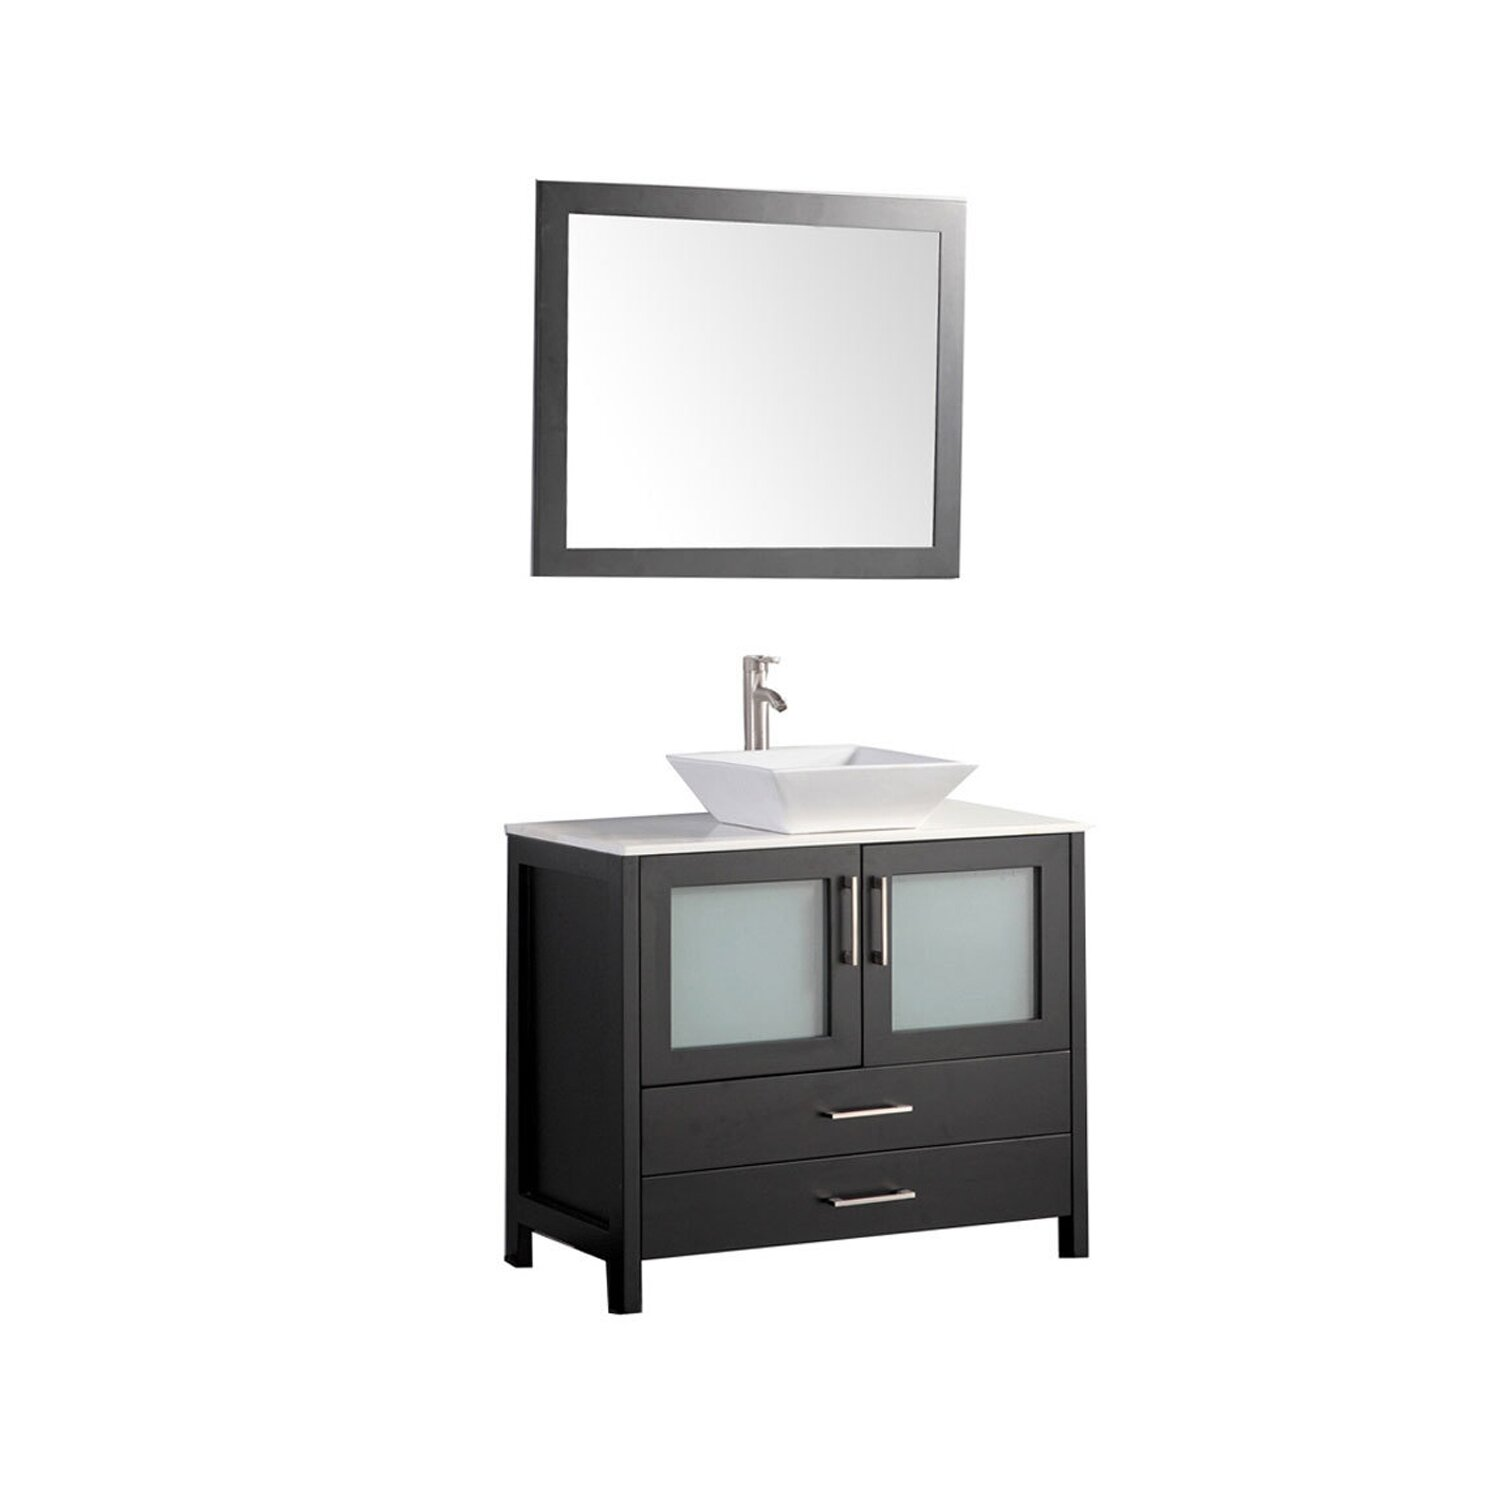 mtd vanities jordan 48 single sink bathroom vanity set with mirror